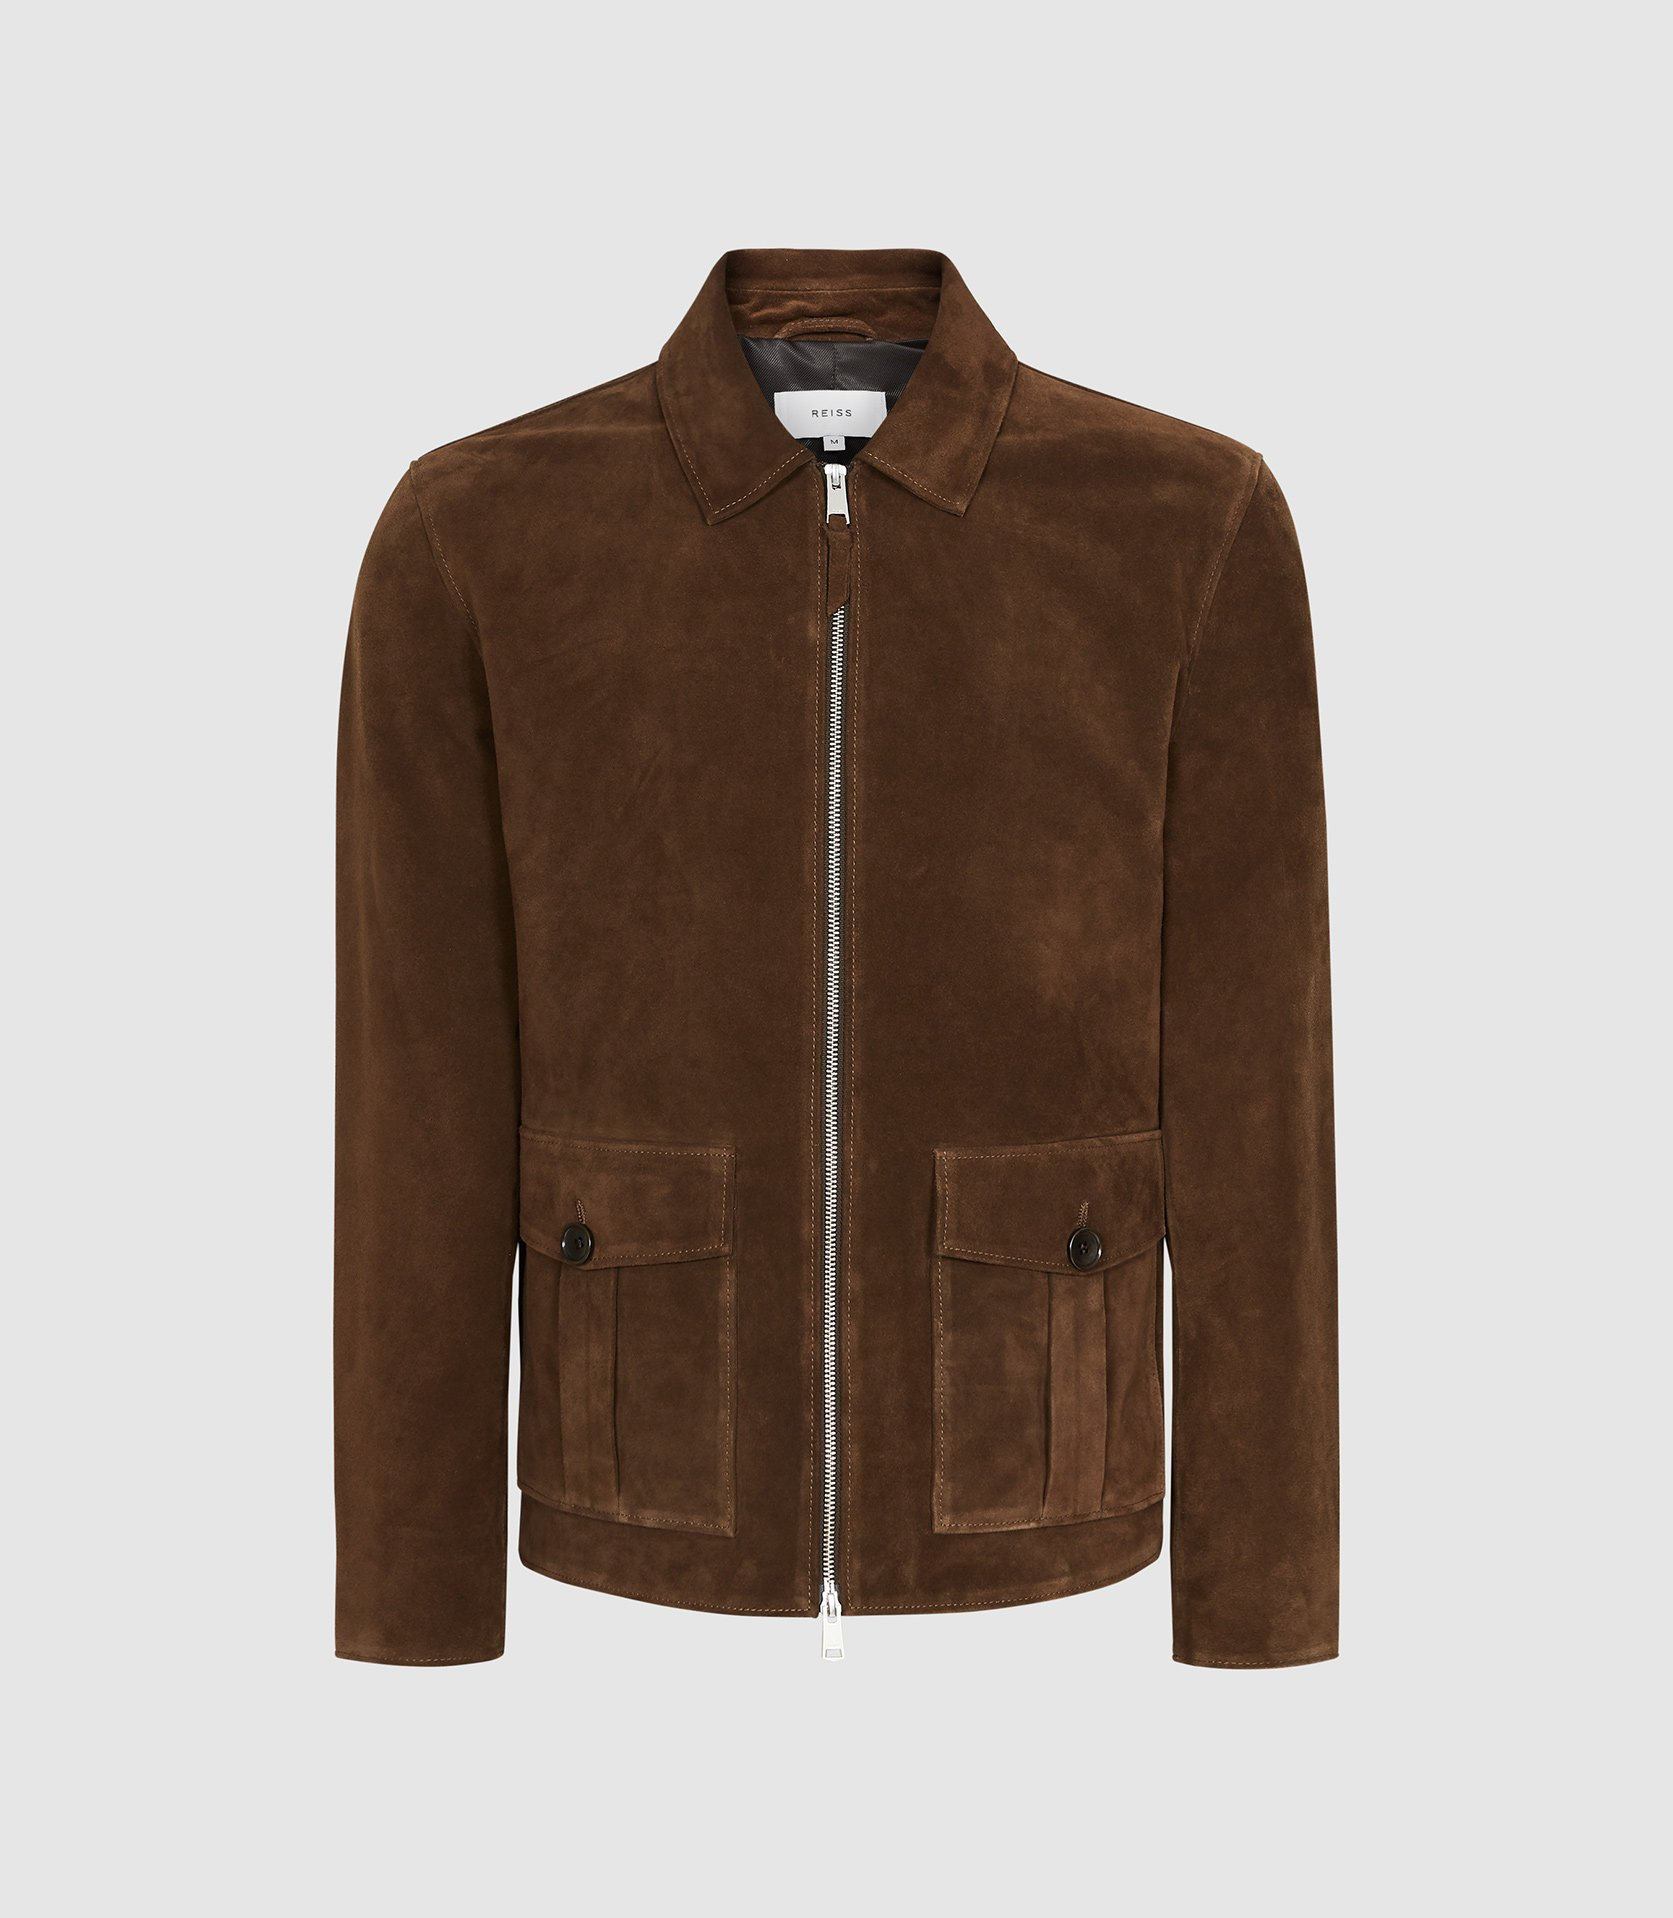 Reiss suede jacket - £550 - Just one of the highlights from a superb spring collection.